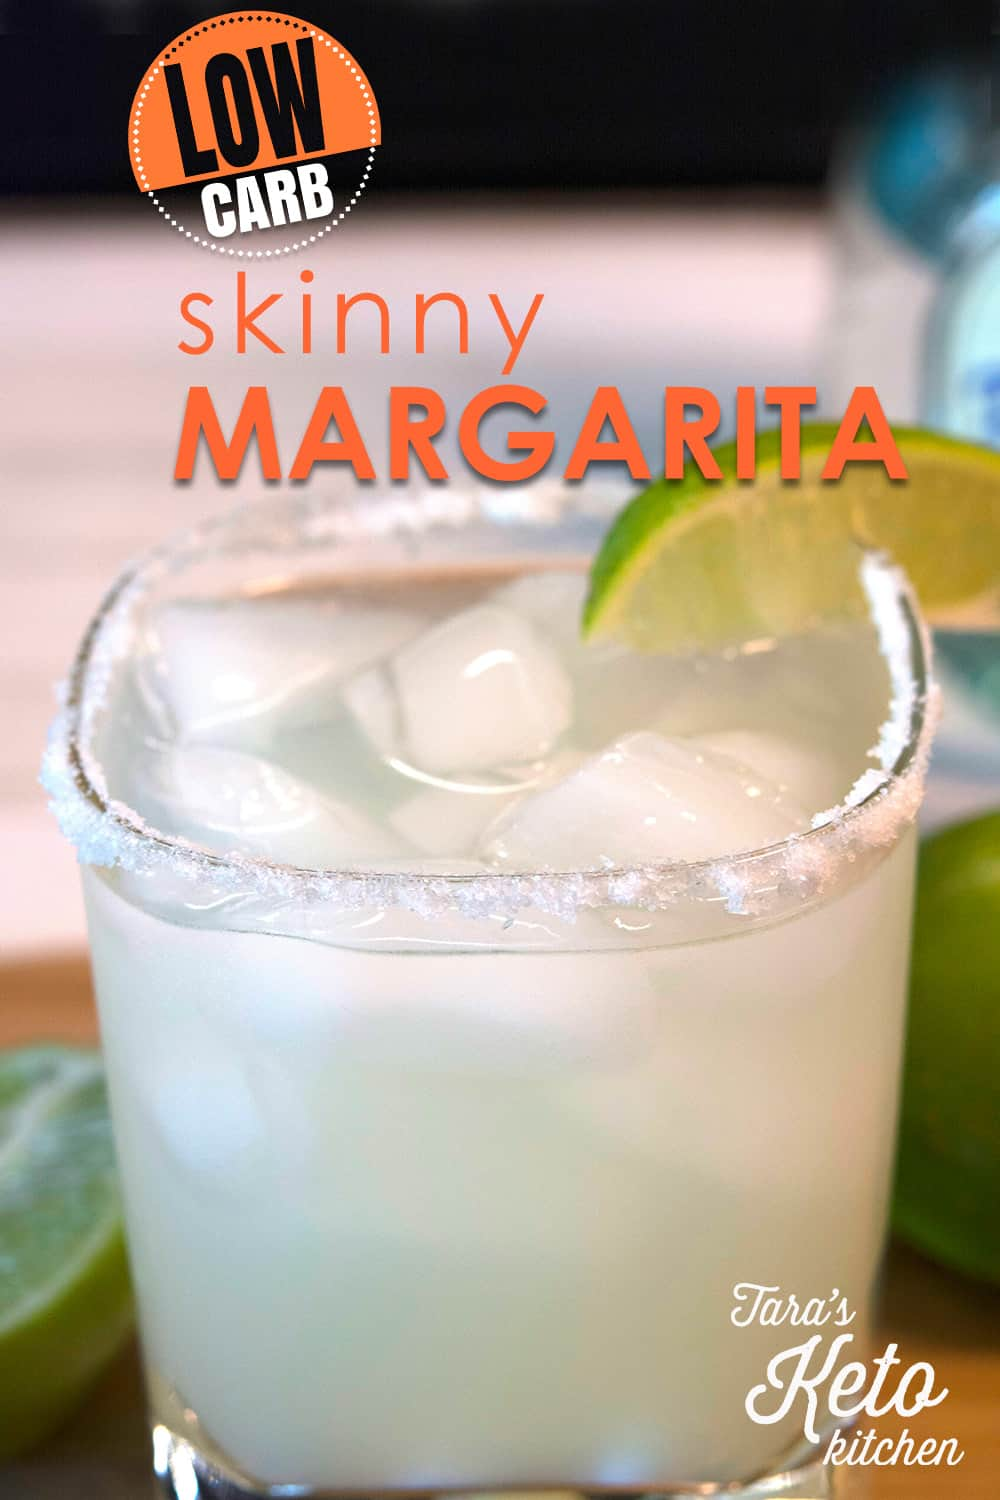 Low Carb Margarita with title